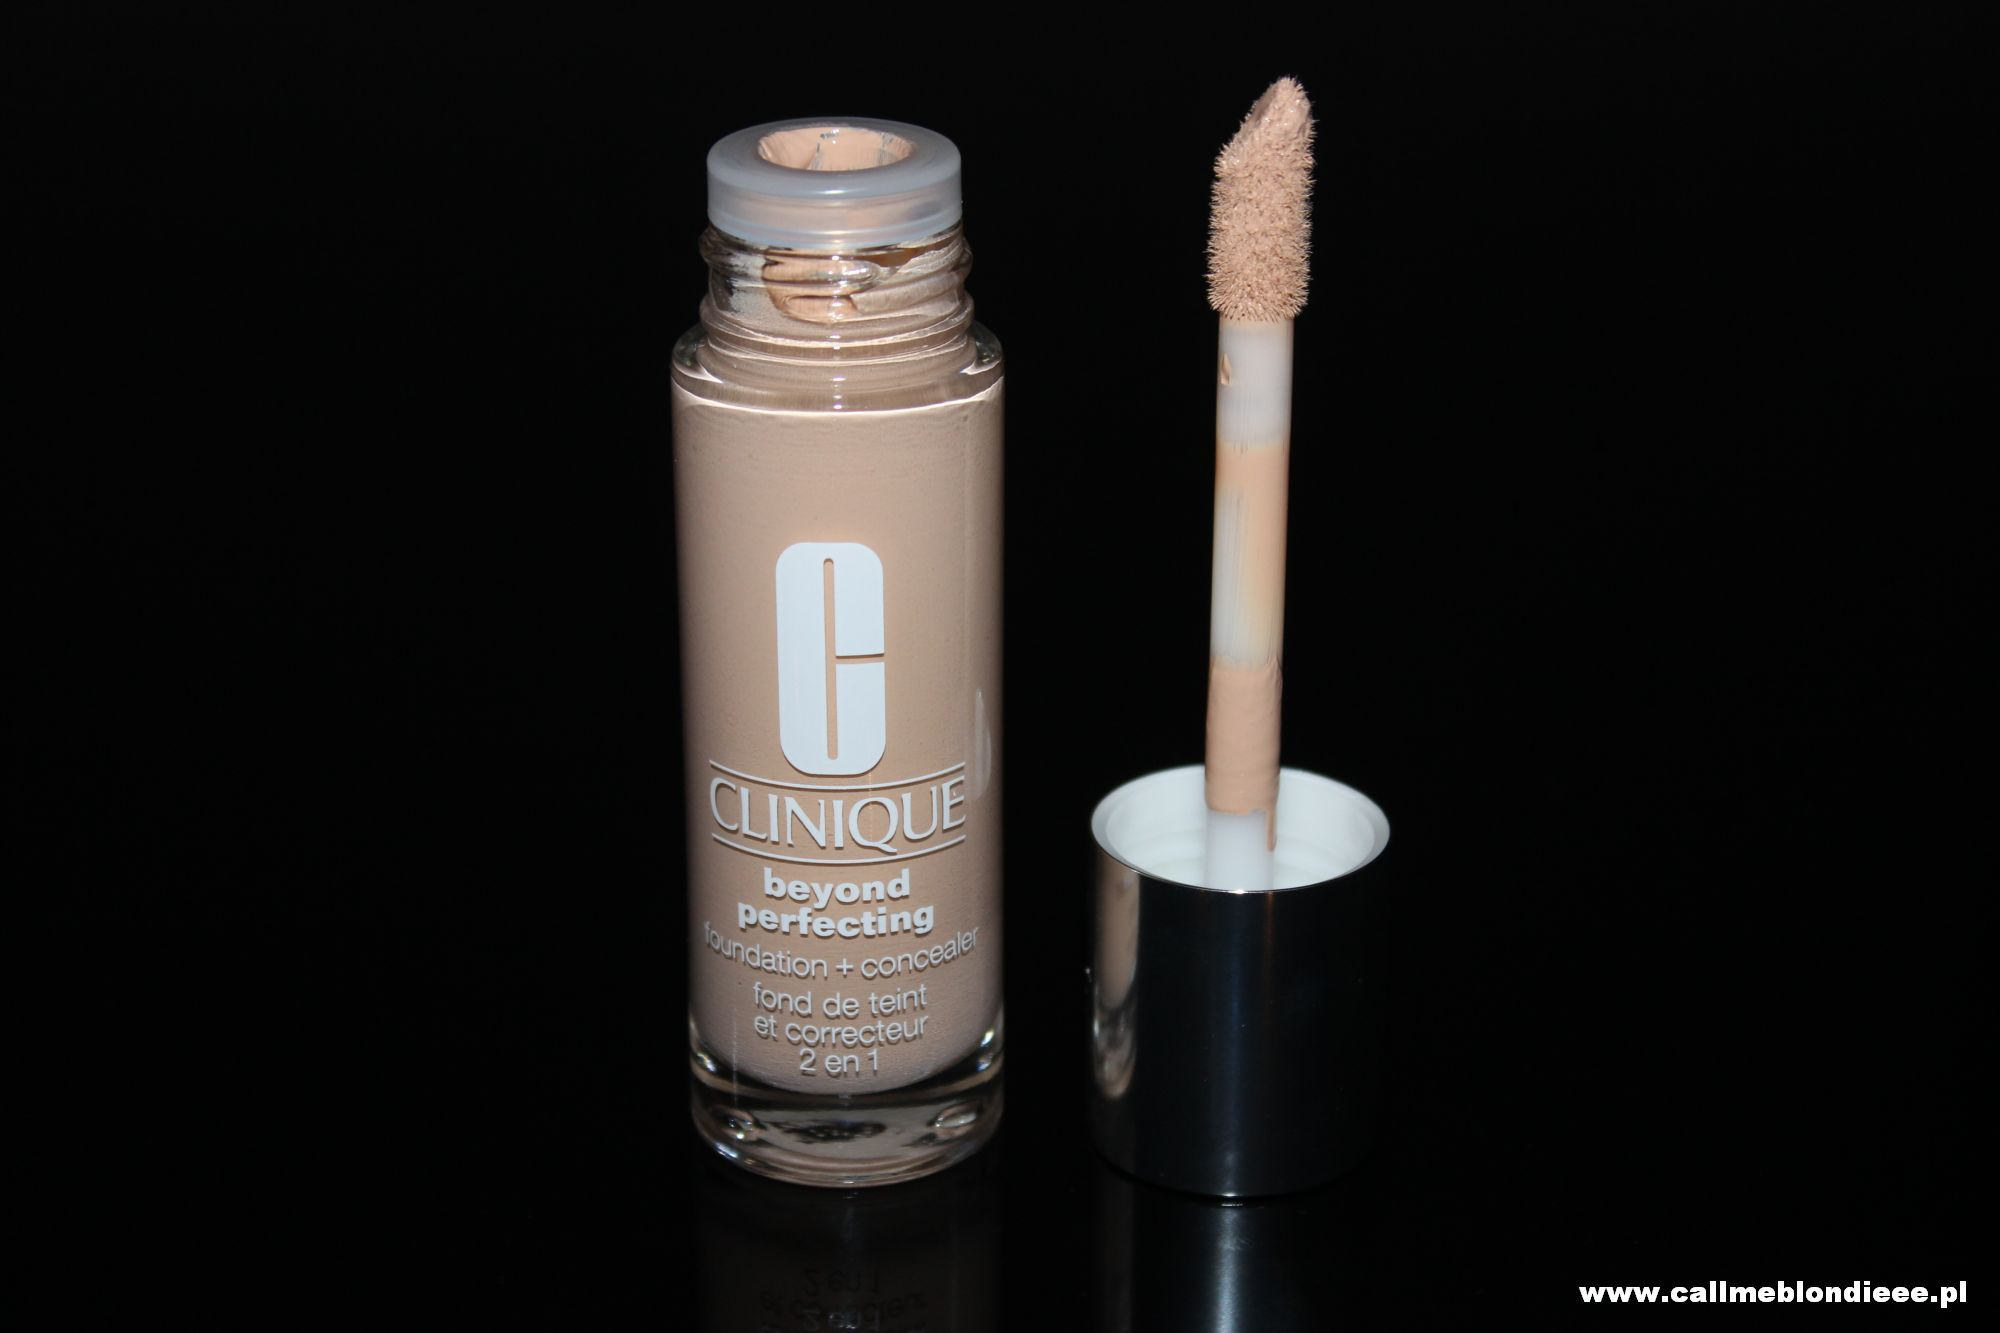 Clinique Perfecting Foundation Concealer 1